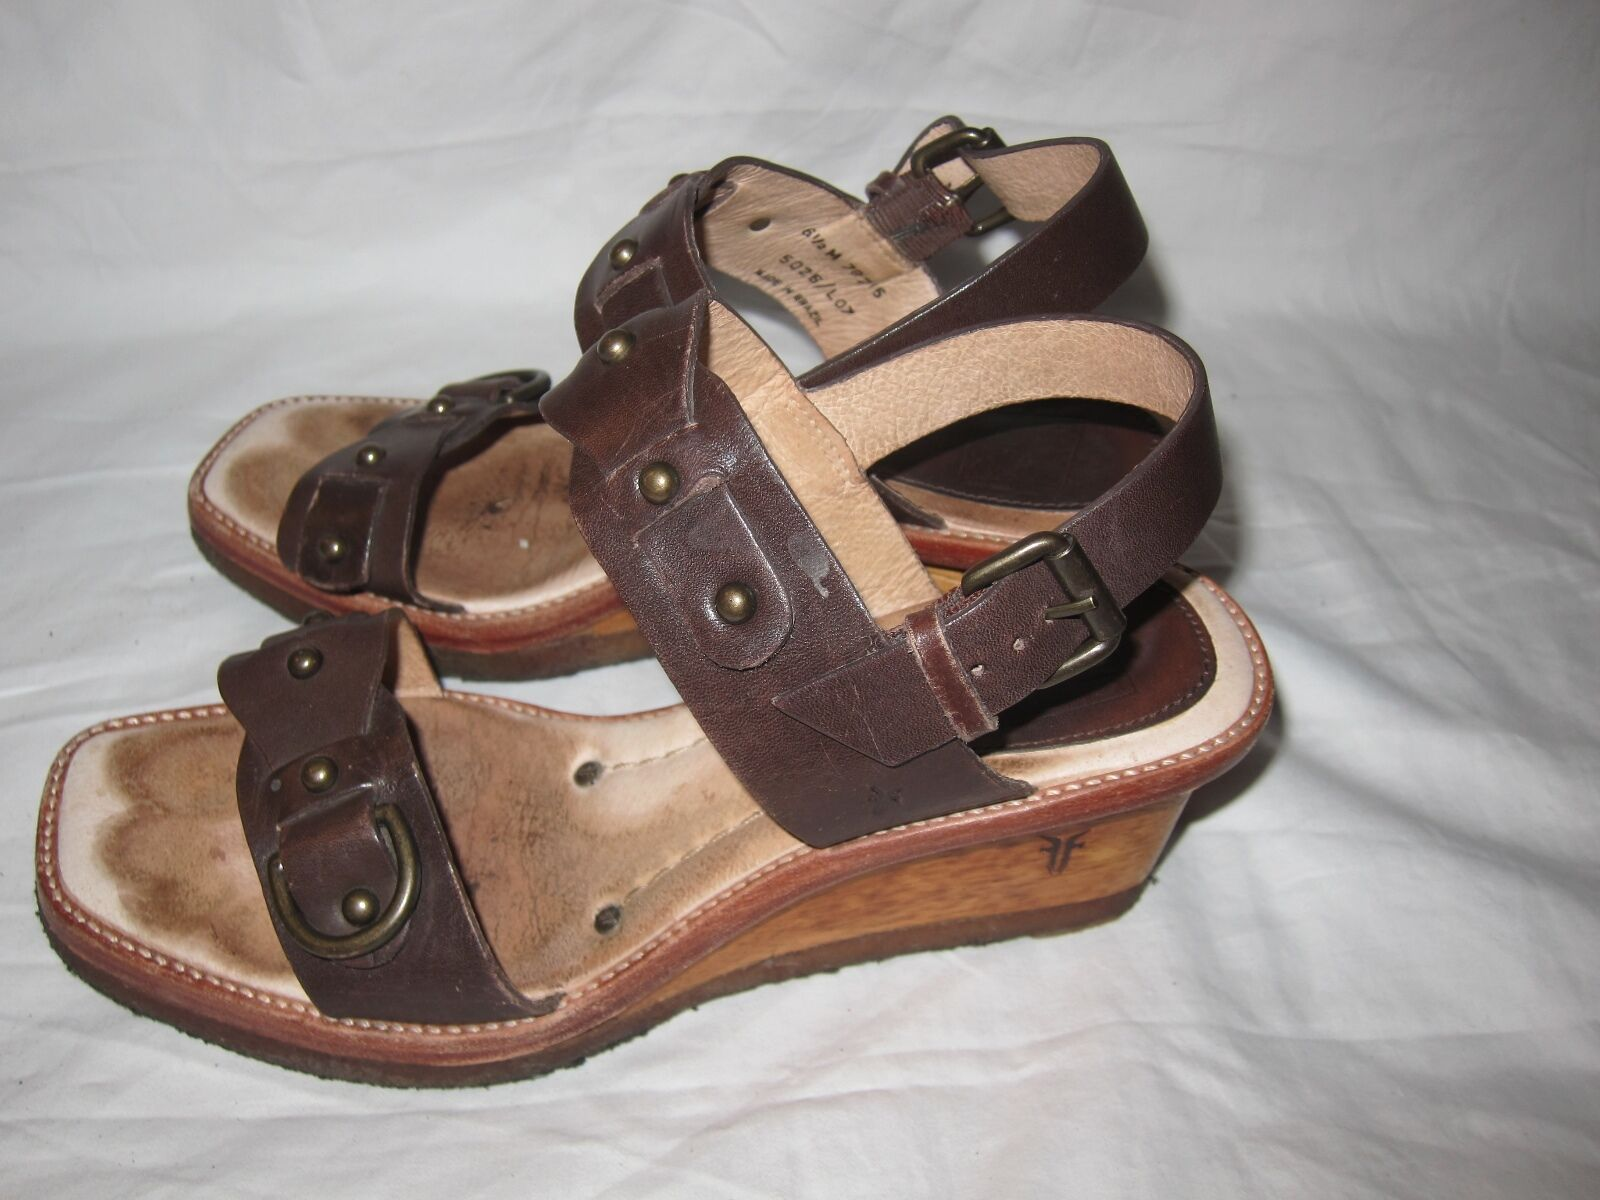 Gorgeous  Frye Women's Brown Leather Peep Toe Slingback Wedges SZ 6.5 M